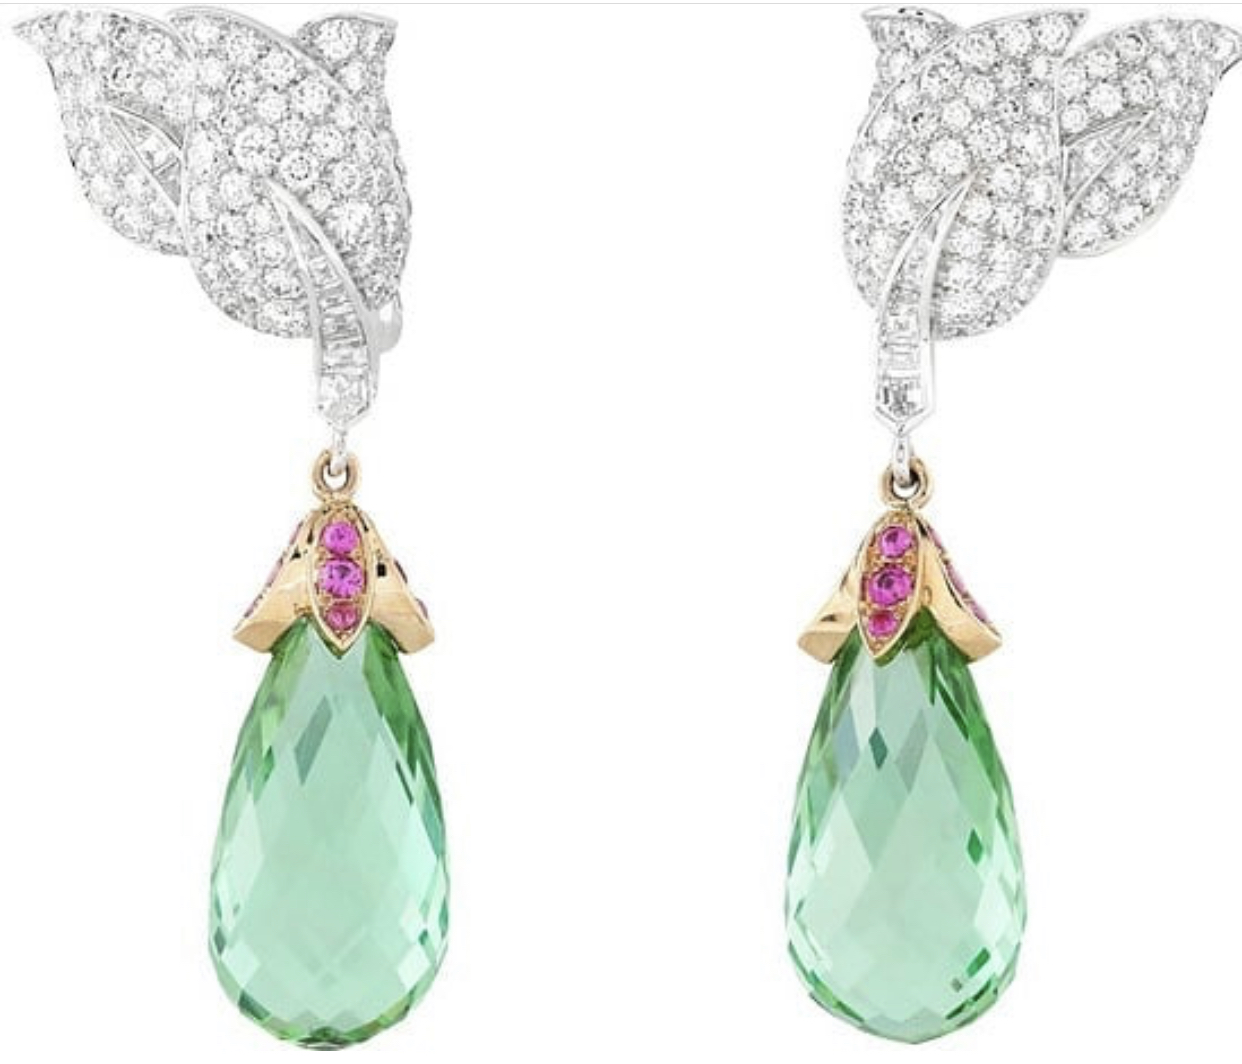 Briolette - is a teardrop shaped faceted gemstone or glass bead.